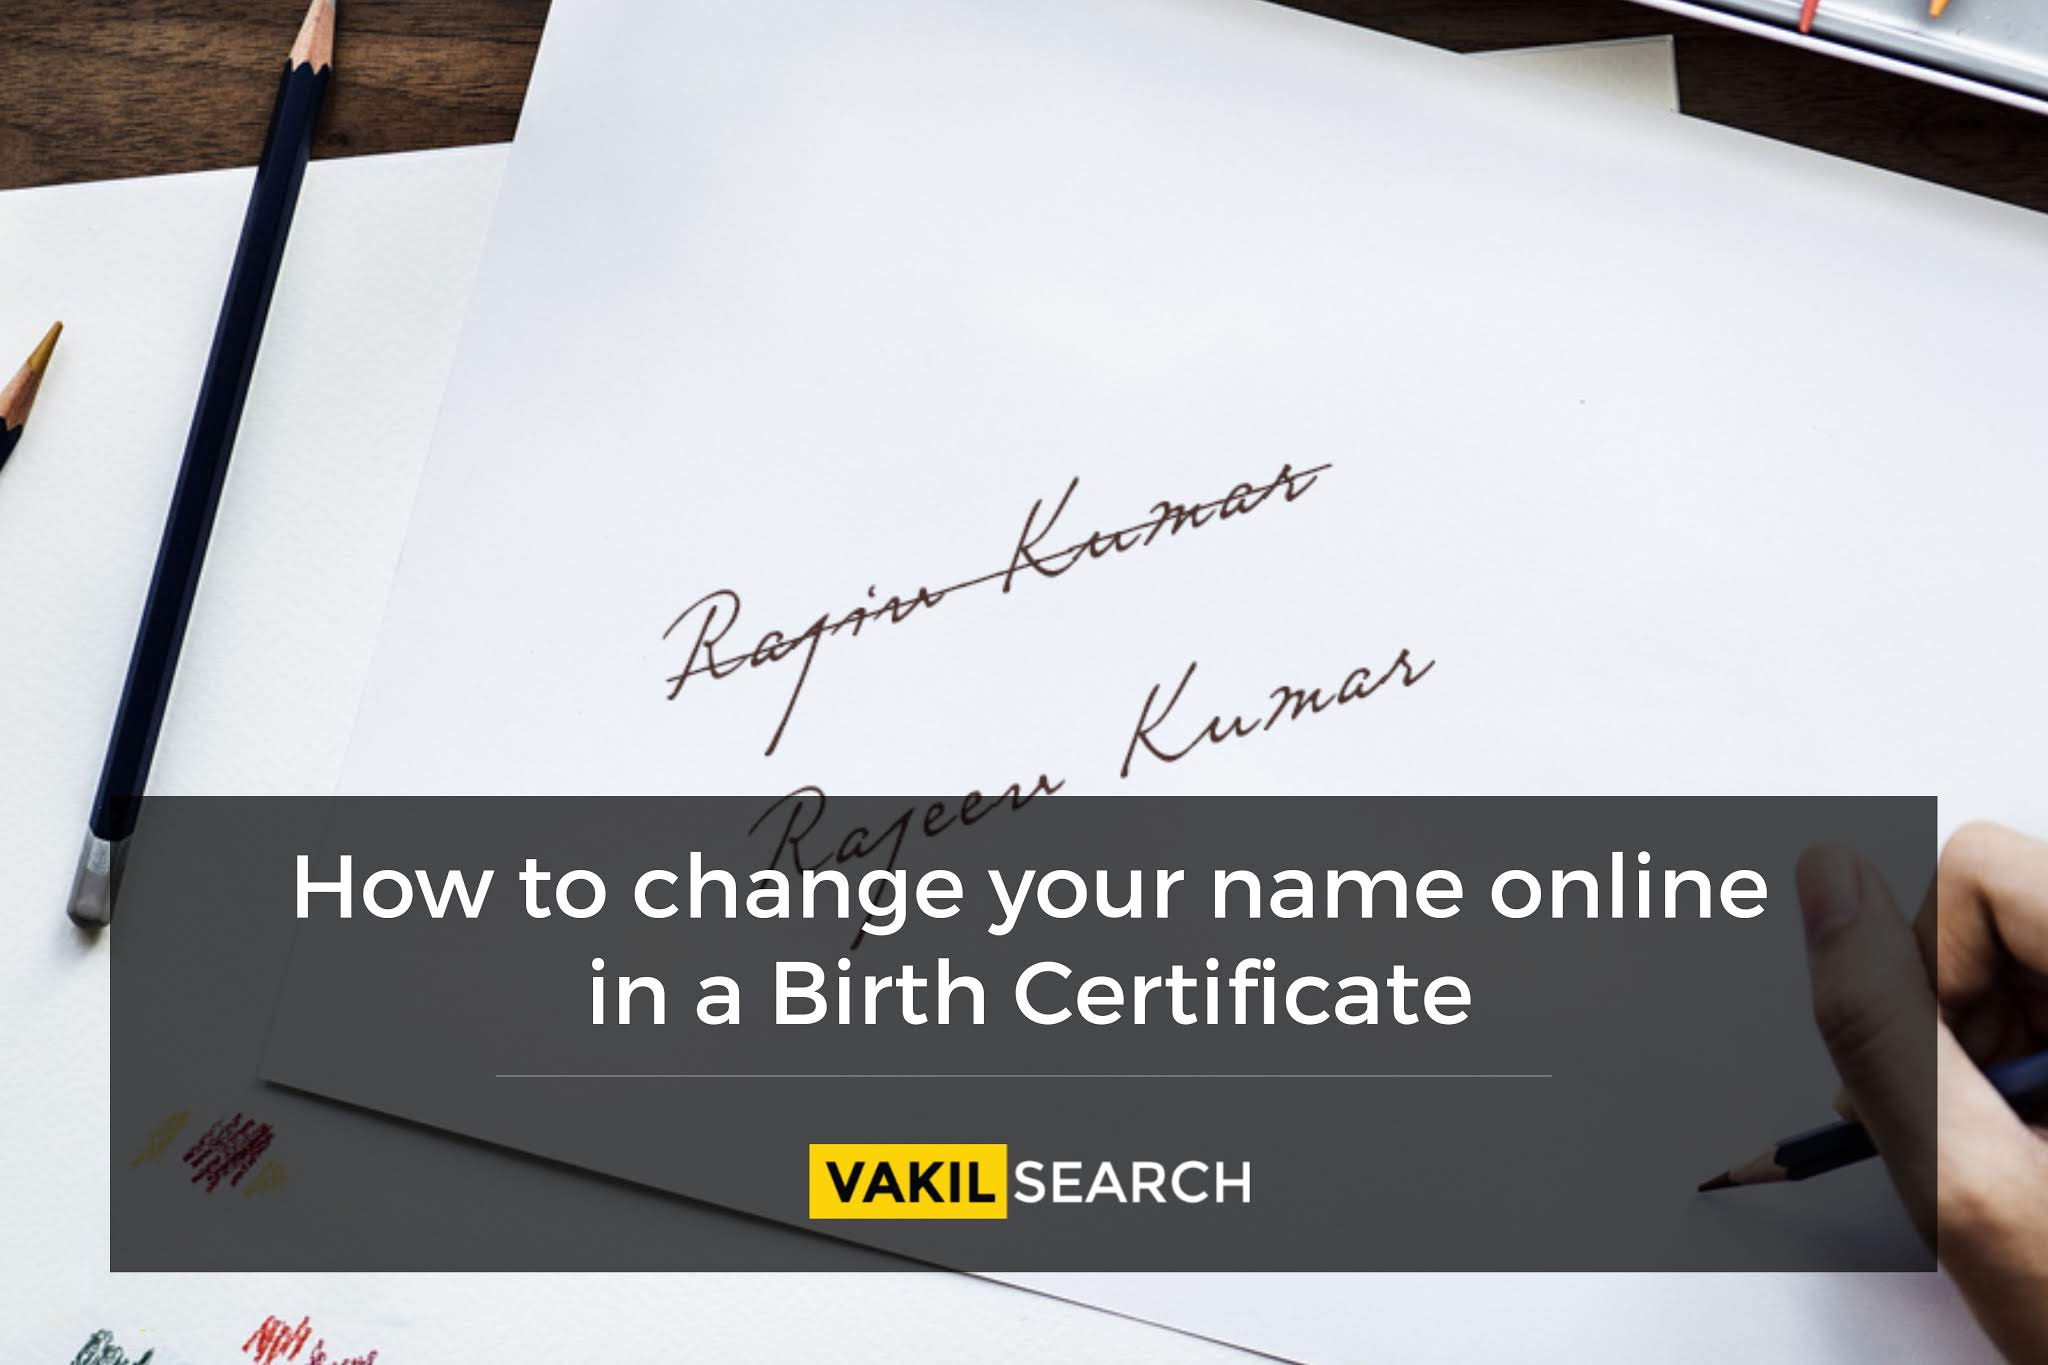 How to change your name online in a Birth Certificate